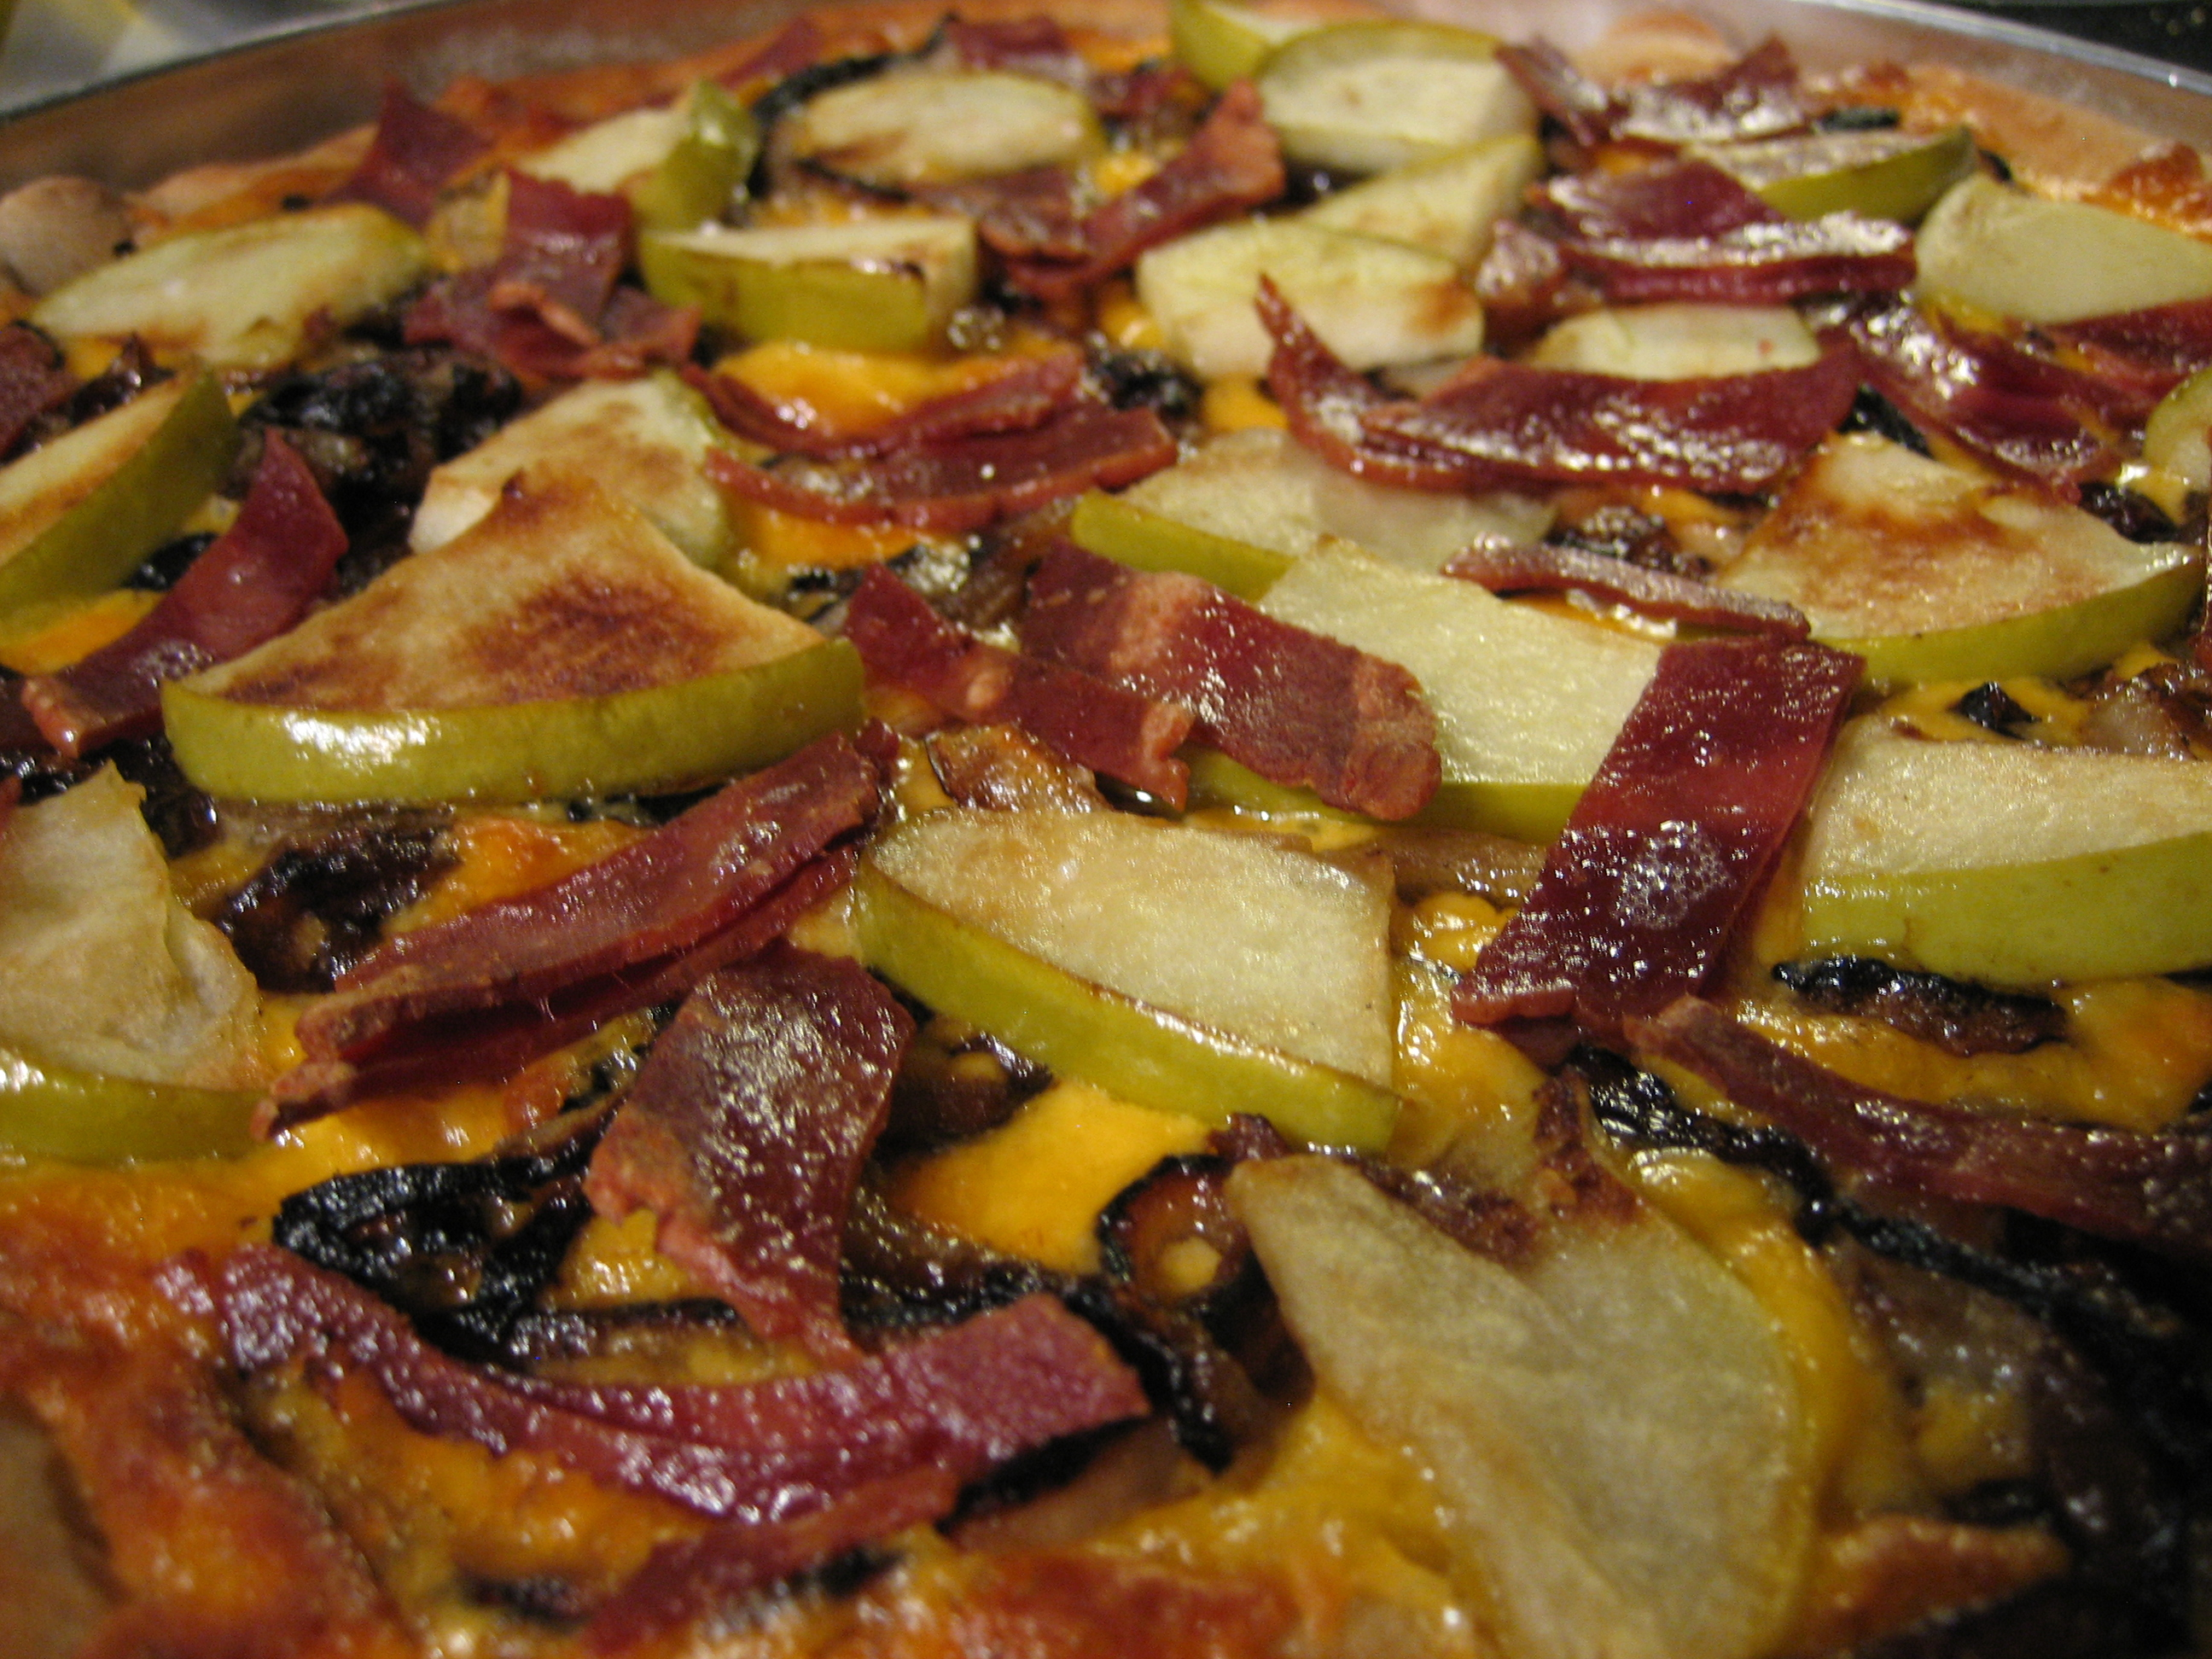 Top 10 Pizzas of 2011